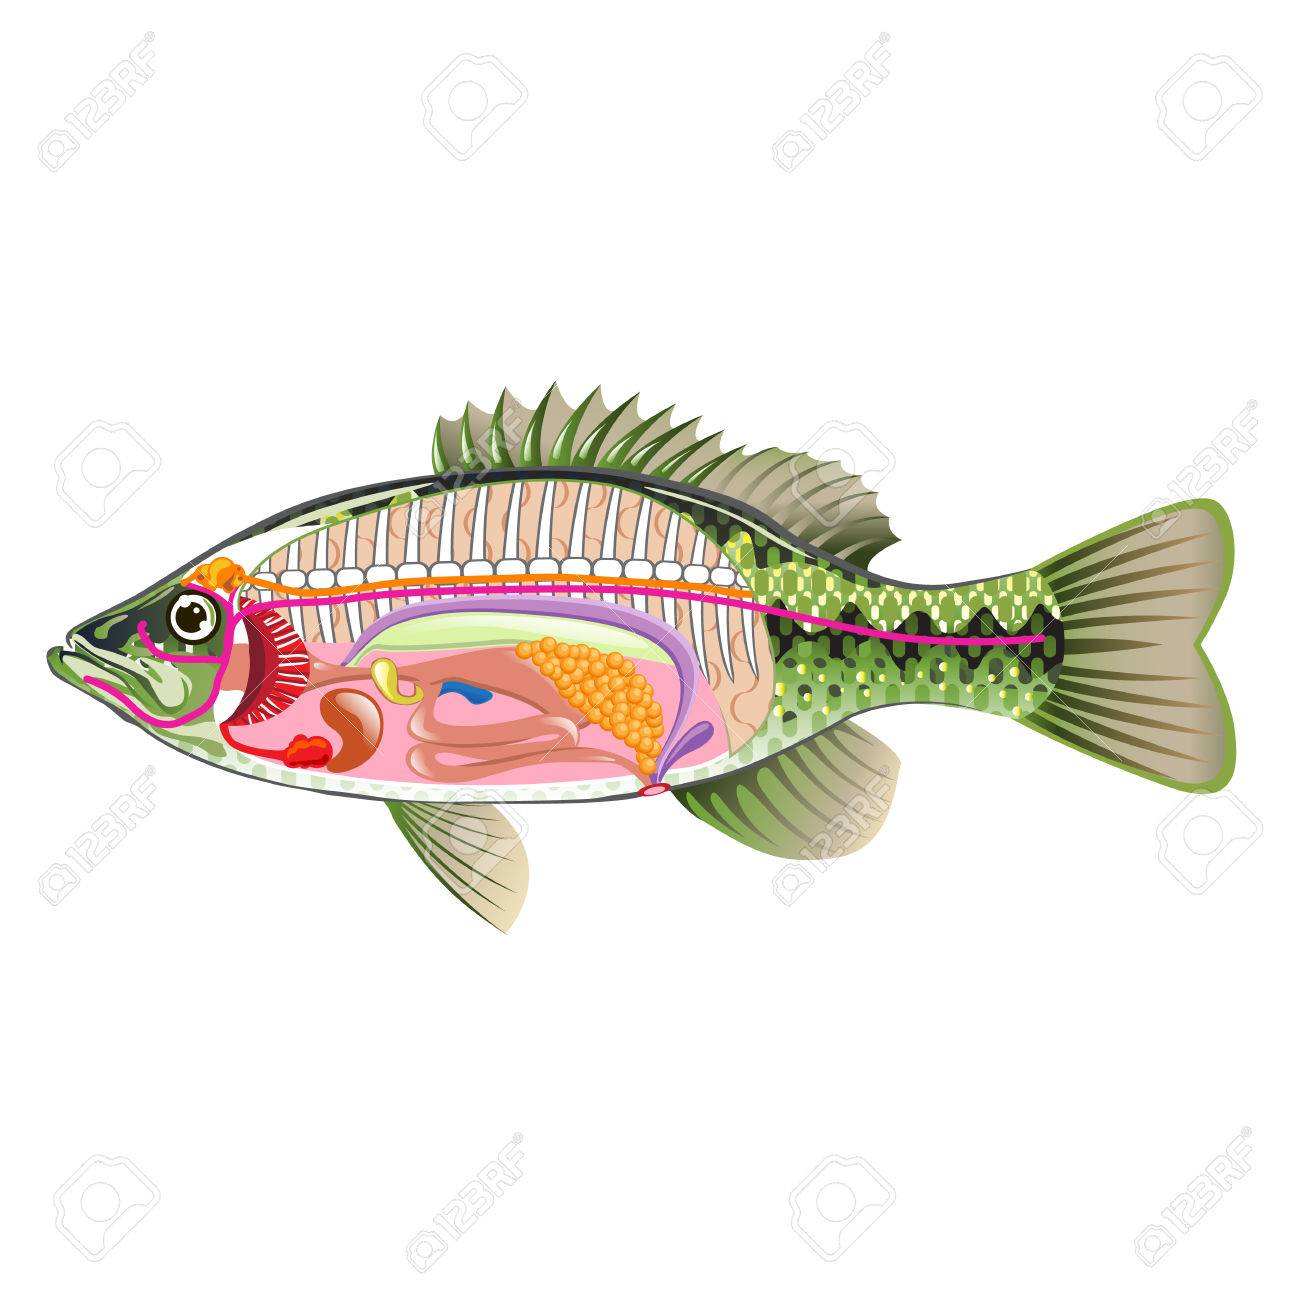 hight resolution of fish internal organs vector art diagram anatomy without labels stock vector 68044486